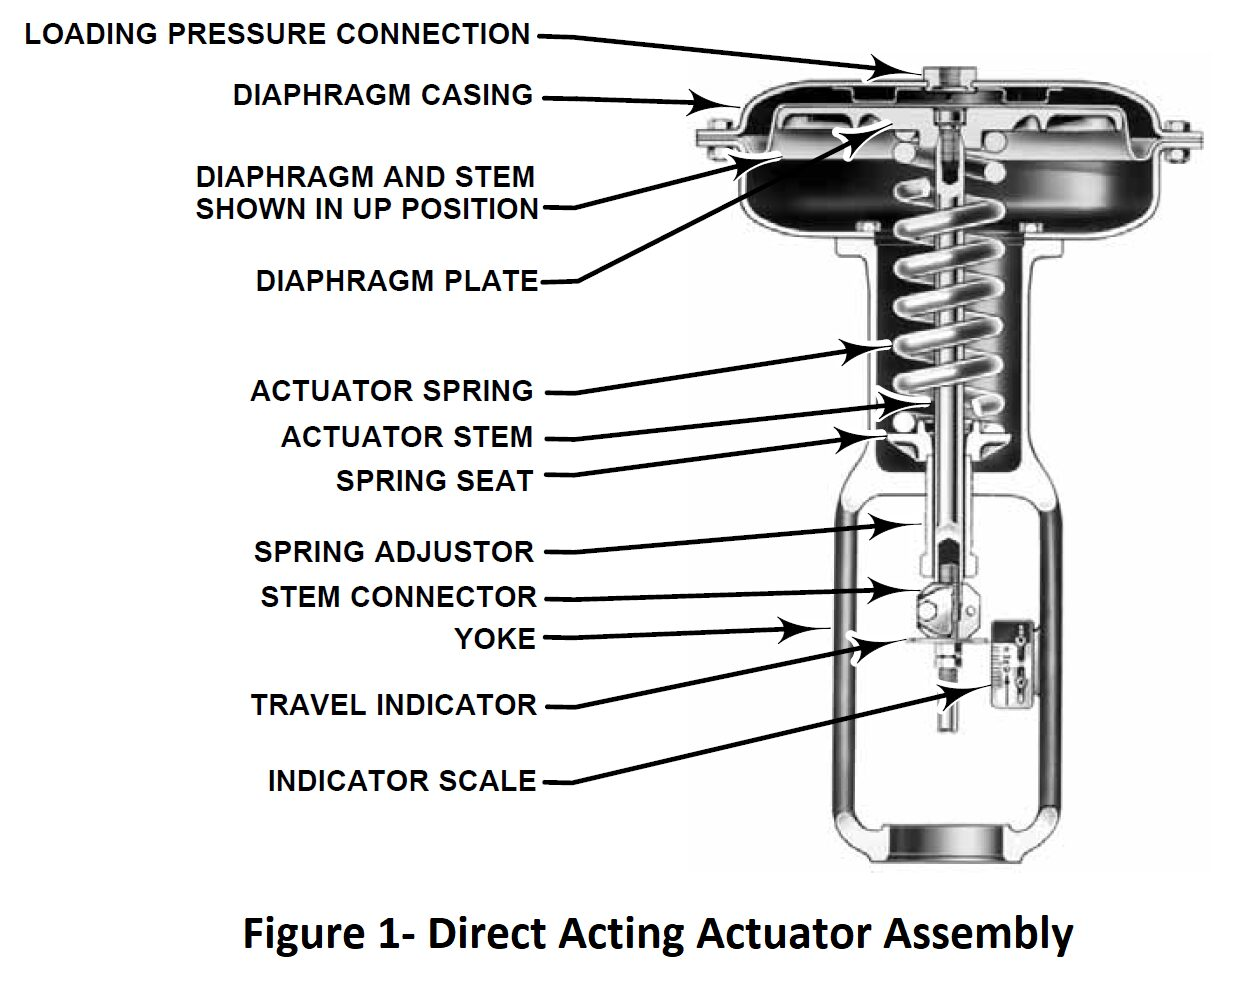 Direct actuator assembely